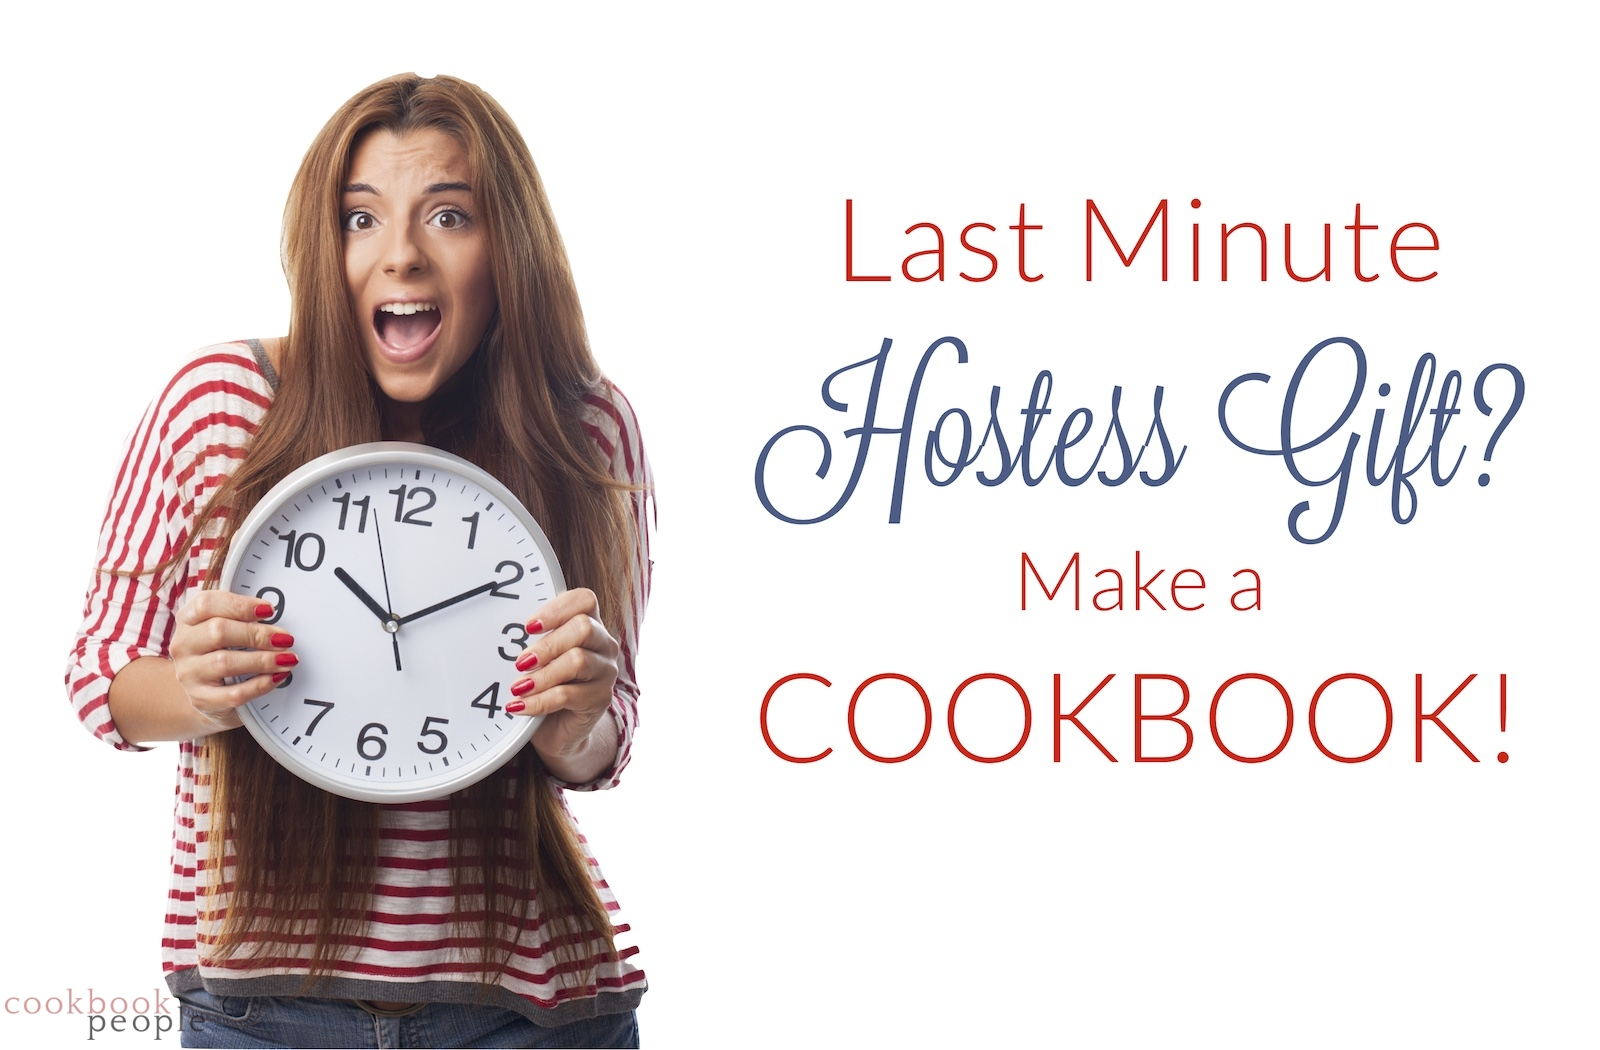 Panic-stricken woman in stripy tshirt holding clock + title: Last Minute Hostess Gift? Make a Cookbook!